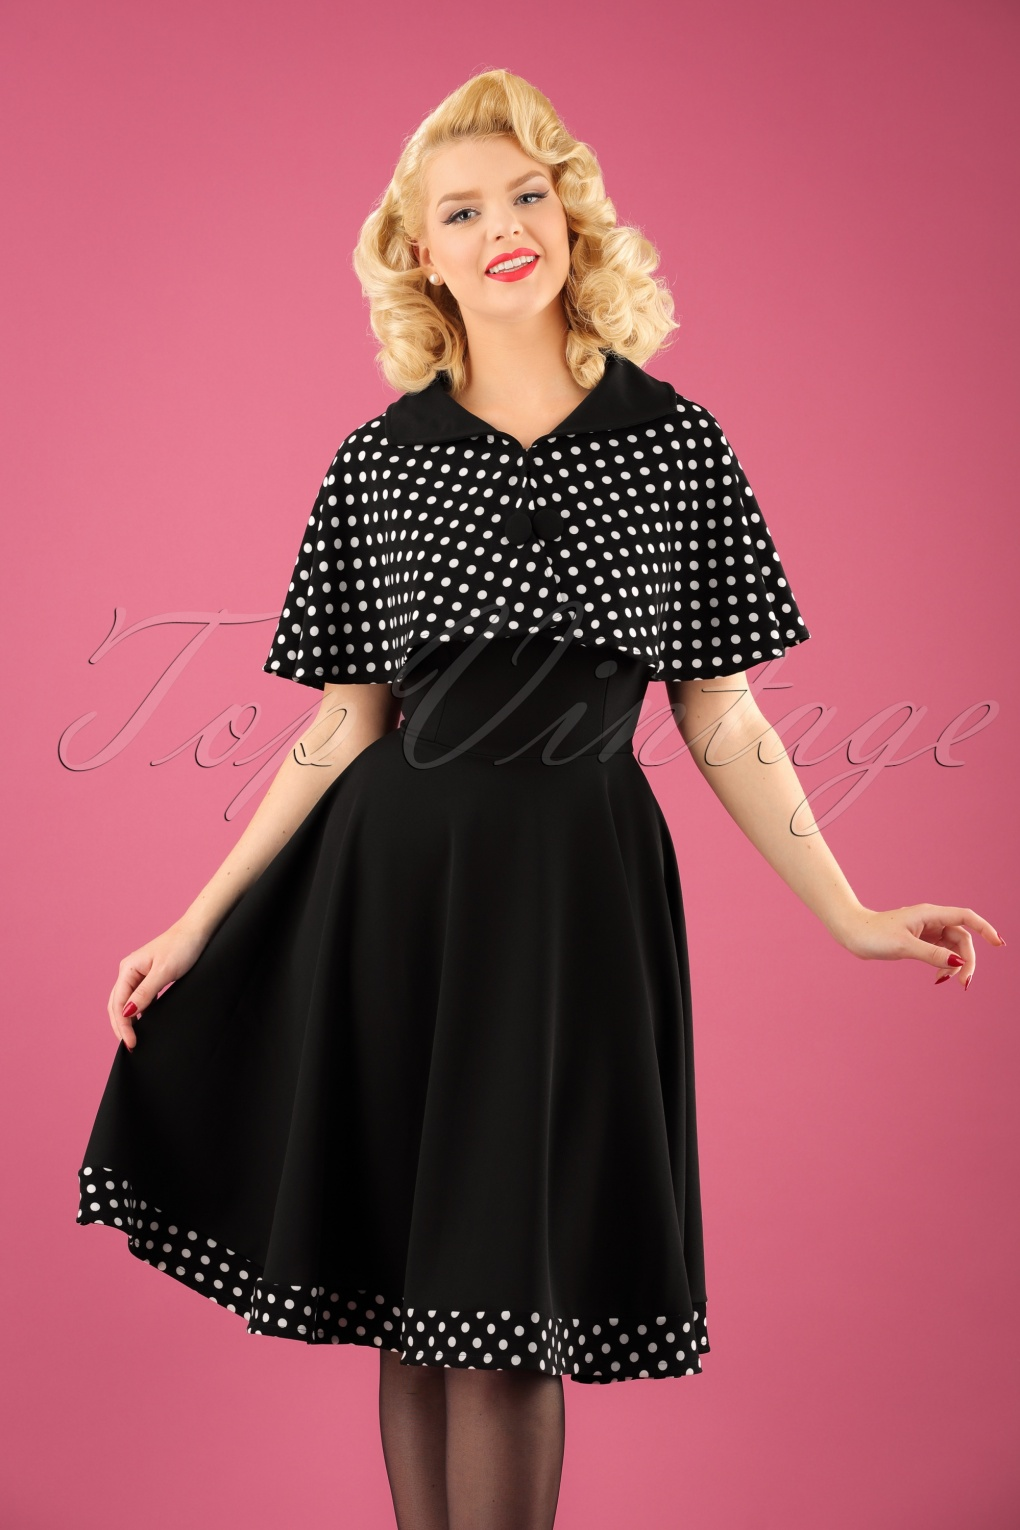 500 Vintage Style Dresses for Sale 50s Lesly Polkadot Cape Swing Dress in Black £55.60 AT vintagedancer.com